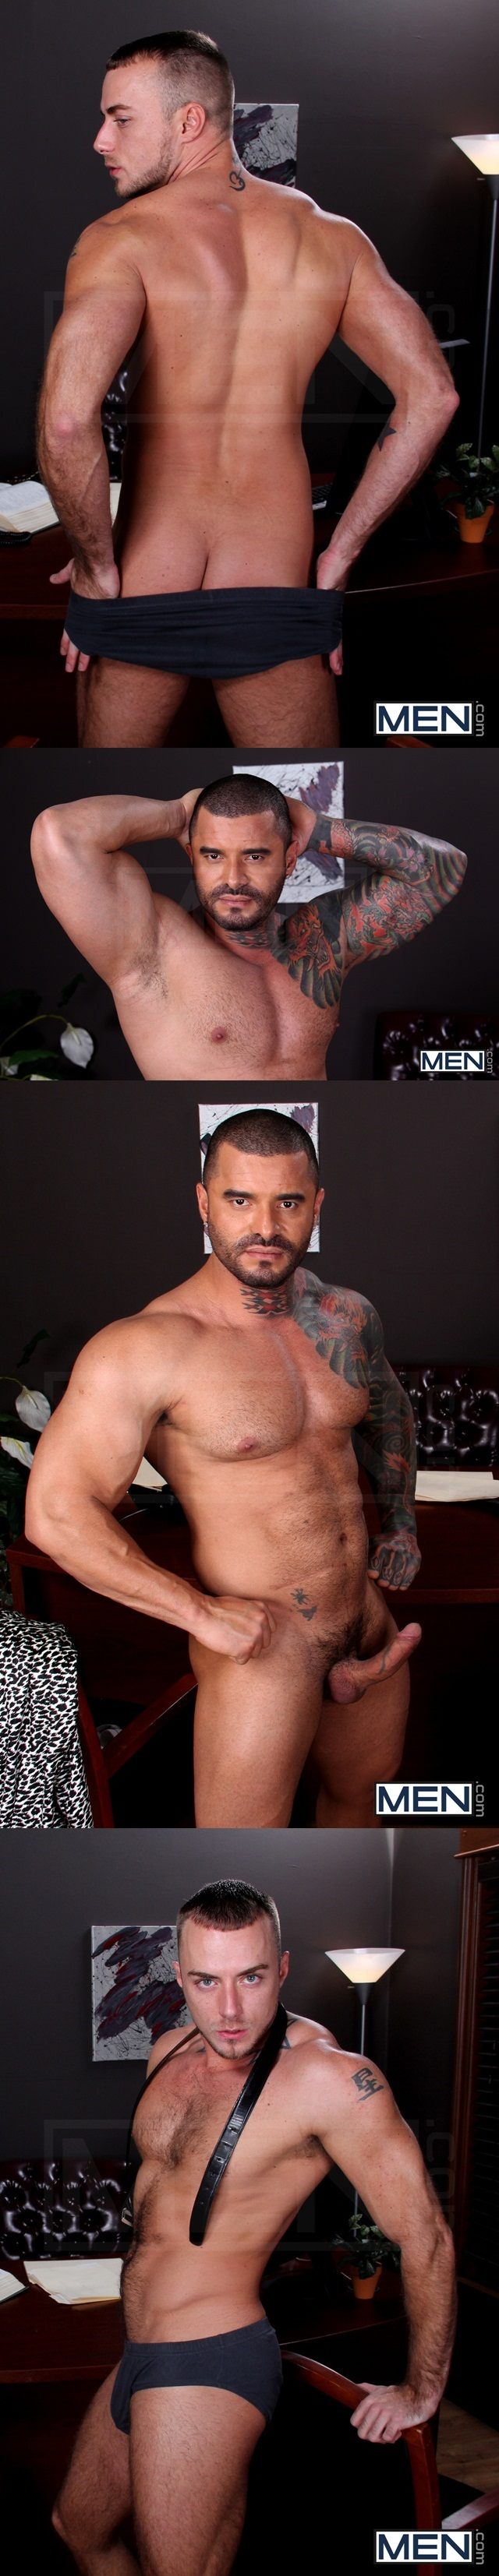 Tattoed muscle hunk Alexsander Freitas rims then fucks Jessie Colter tight butt hole mencom 1 Download Full Gay Porn Gallery here